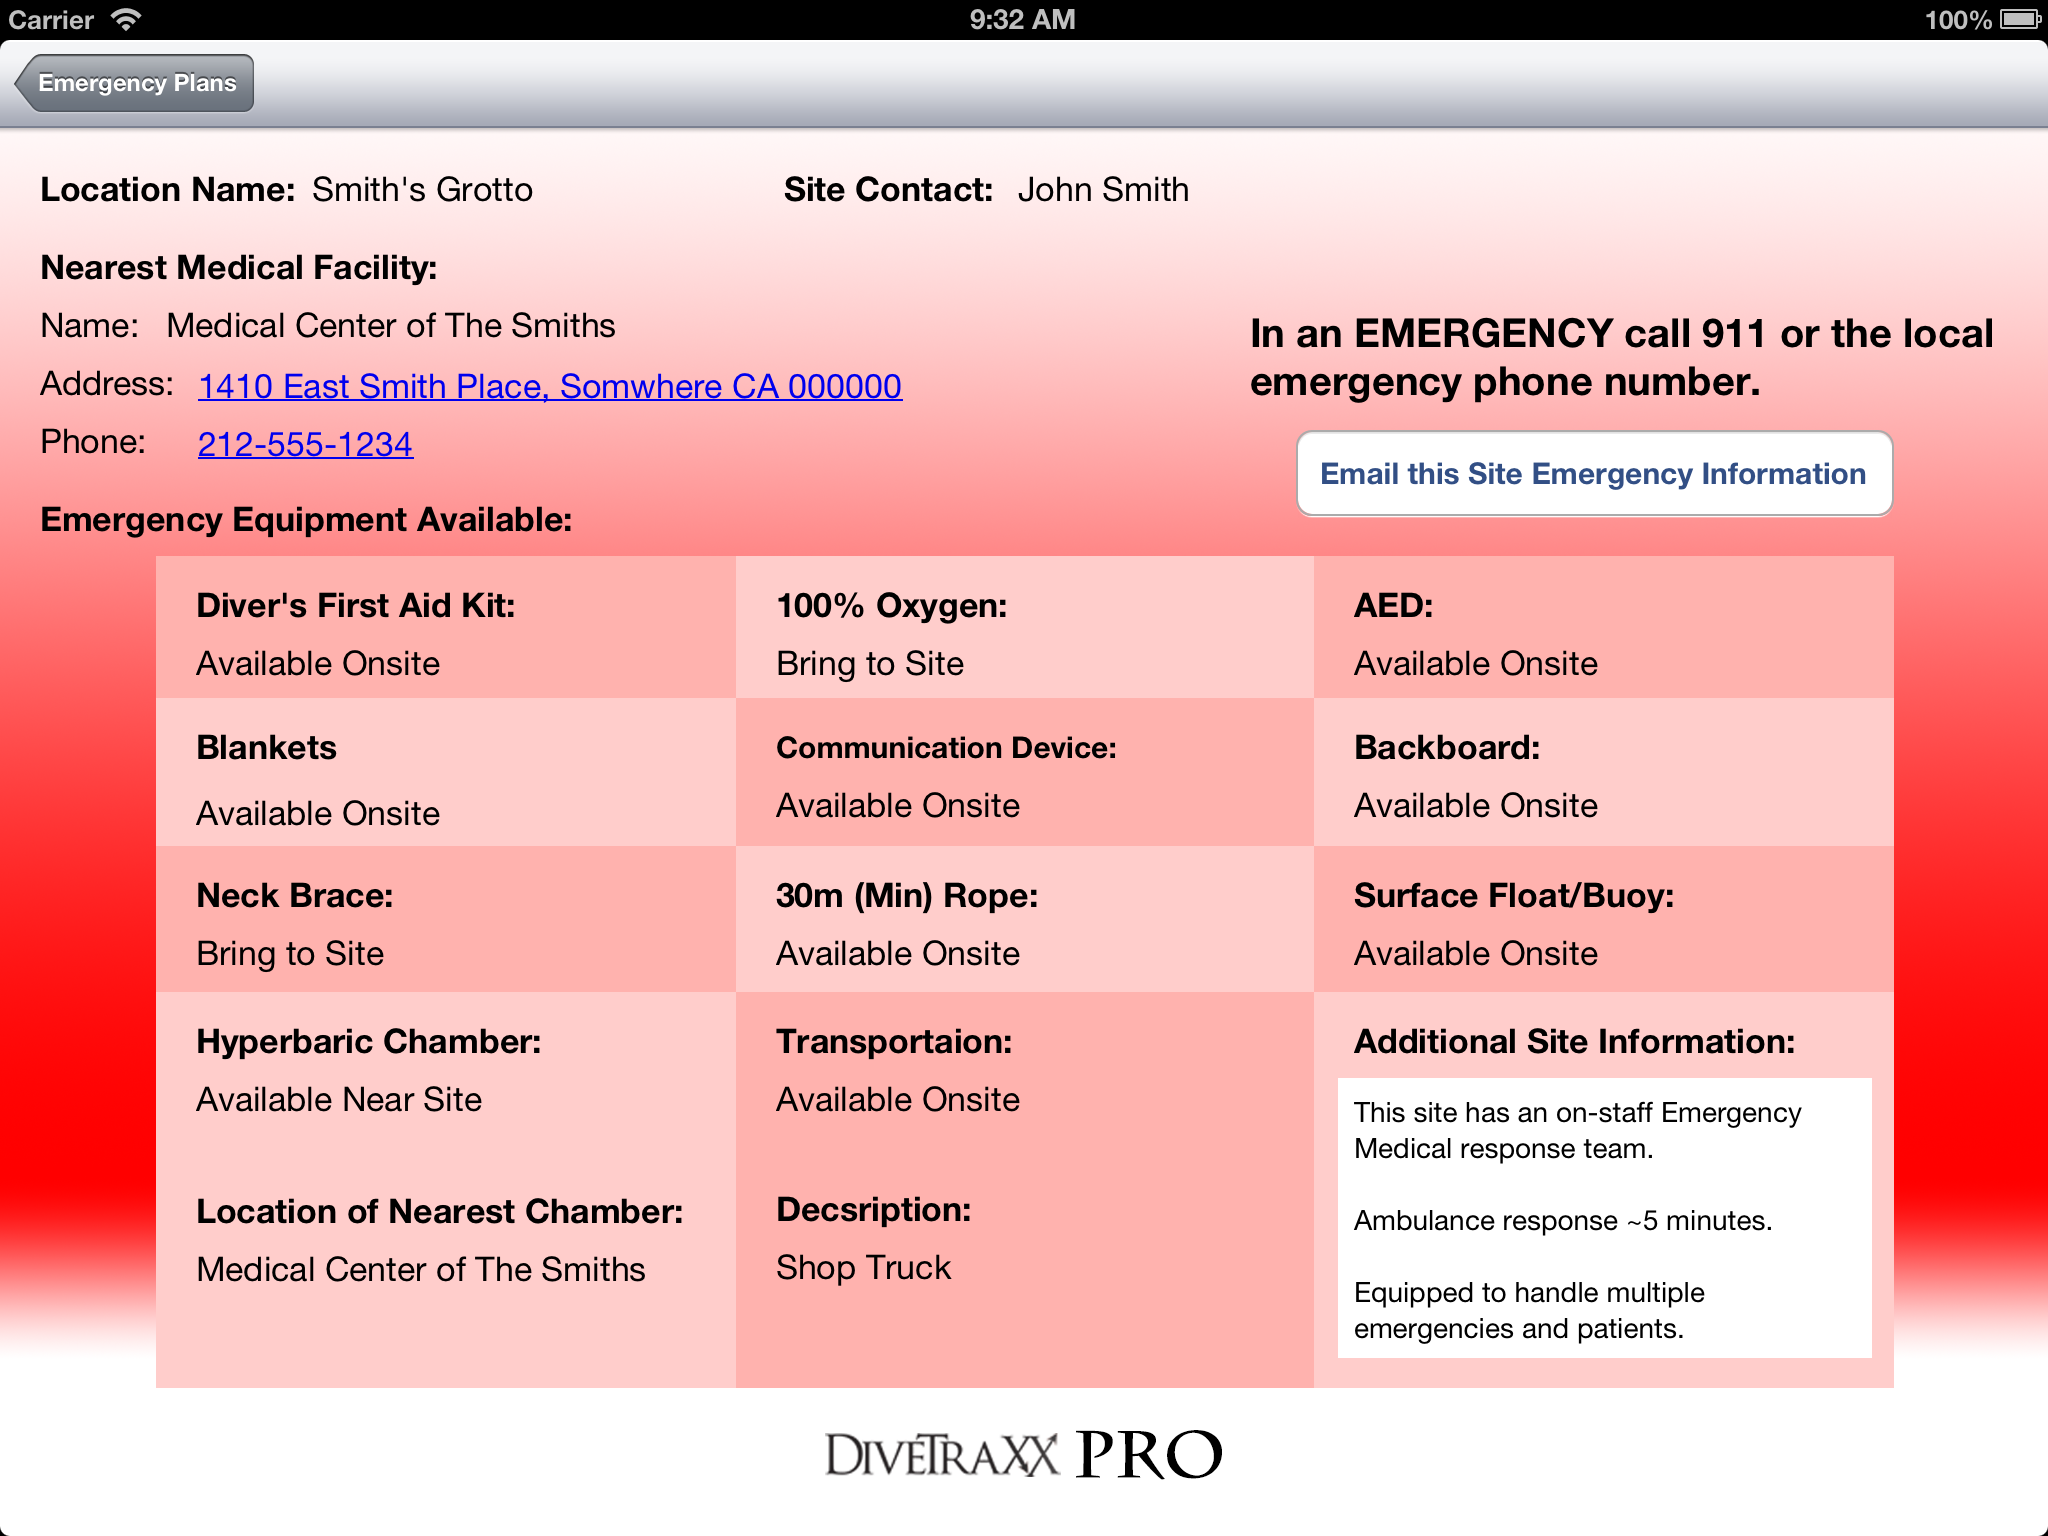 DTX2PRO_EmergencyView_PAD